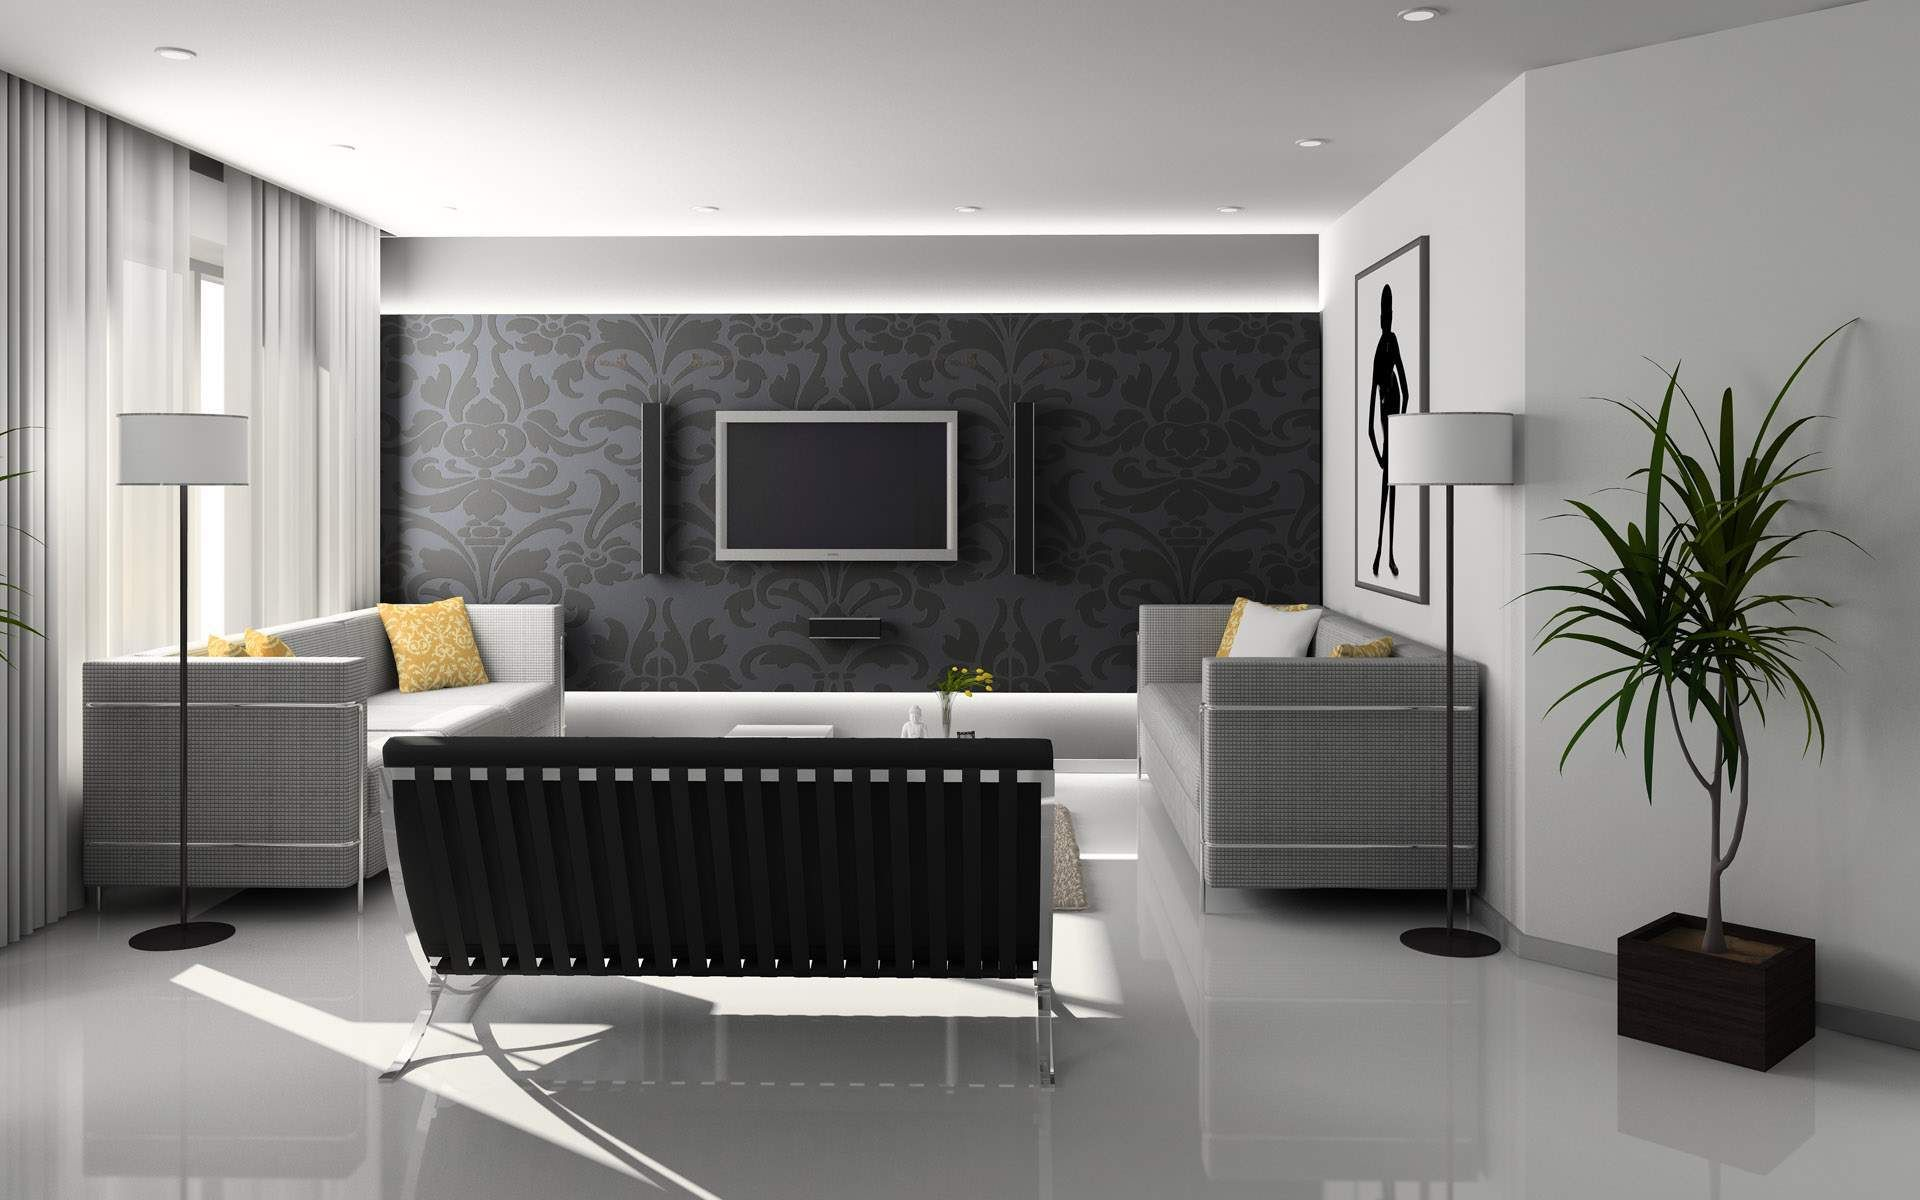 Paint Designs For Living Rooms Stylish And Futuristic Living Room Design Concept Tuxedos Paint